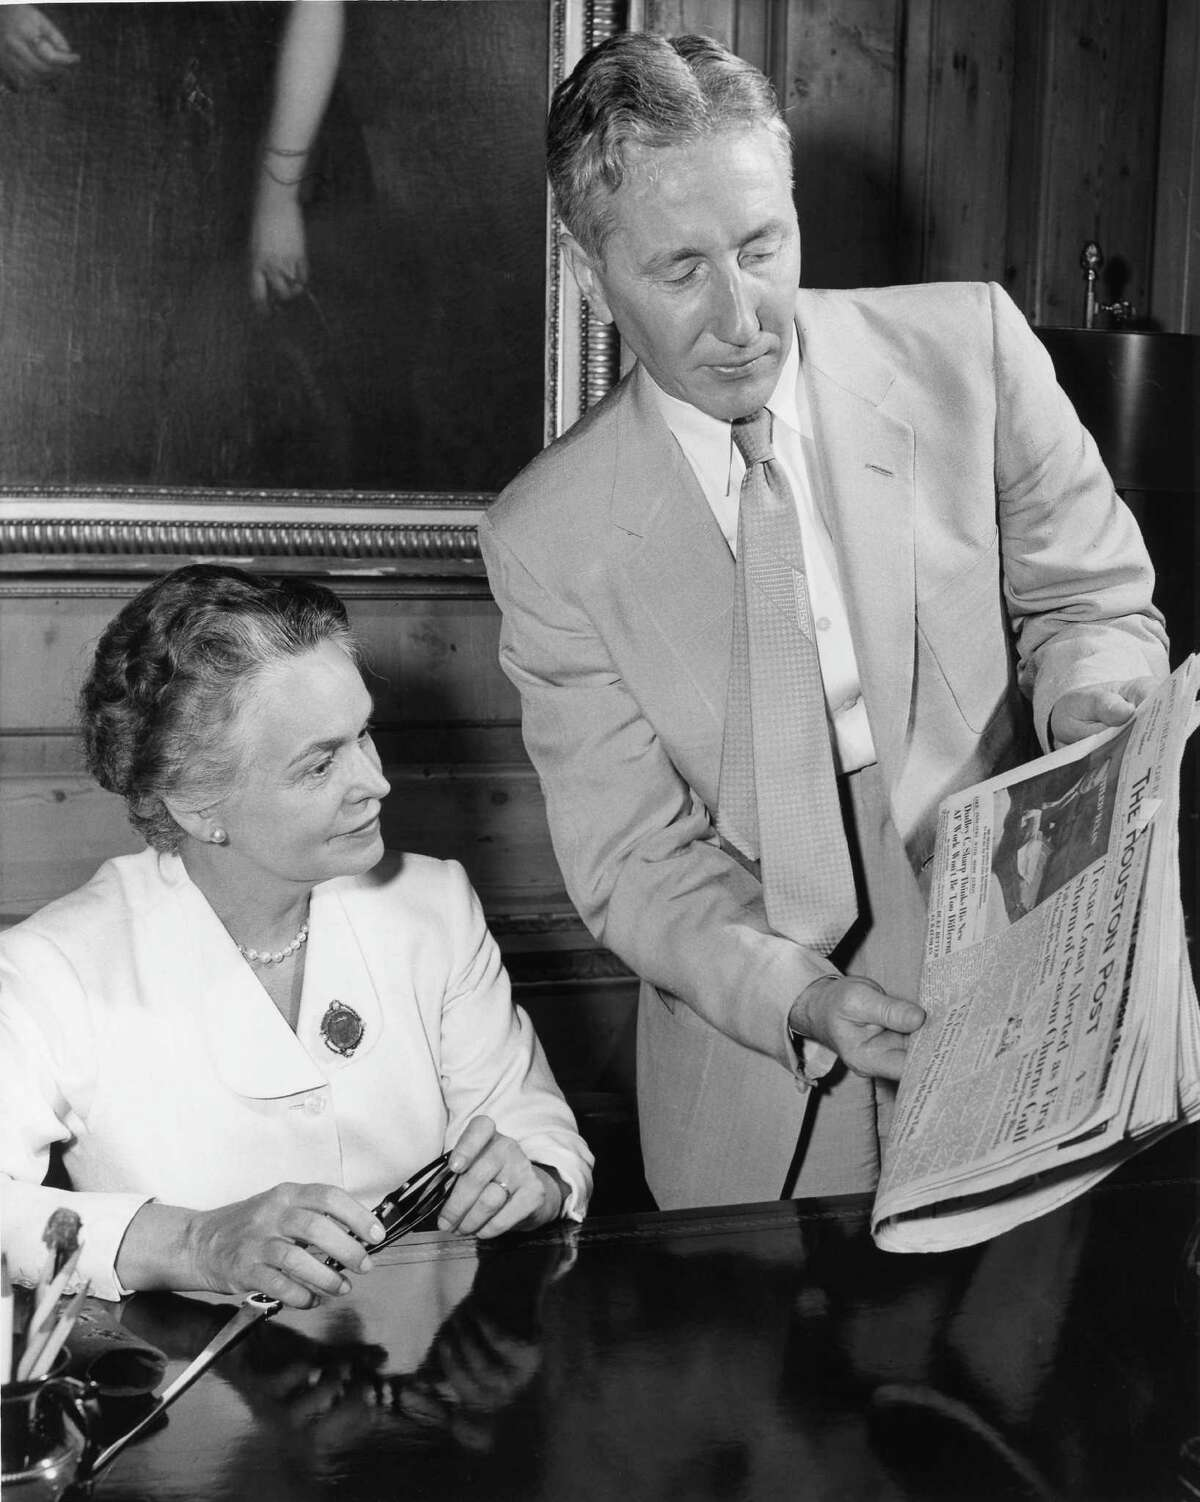 08/1955 - Oveta Culp Hobby, The Houston Post president and editor, is shown the front page of the paper by W. Howard Baldwin, vice-president and general manager of The Houston Post.